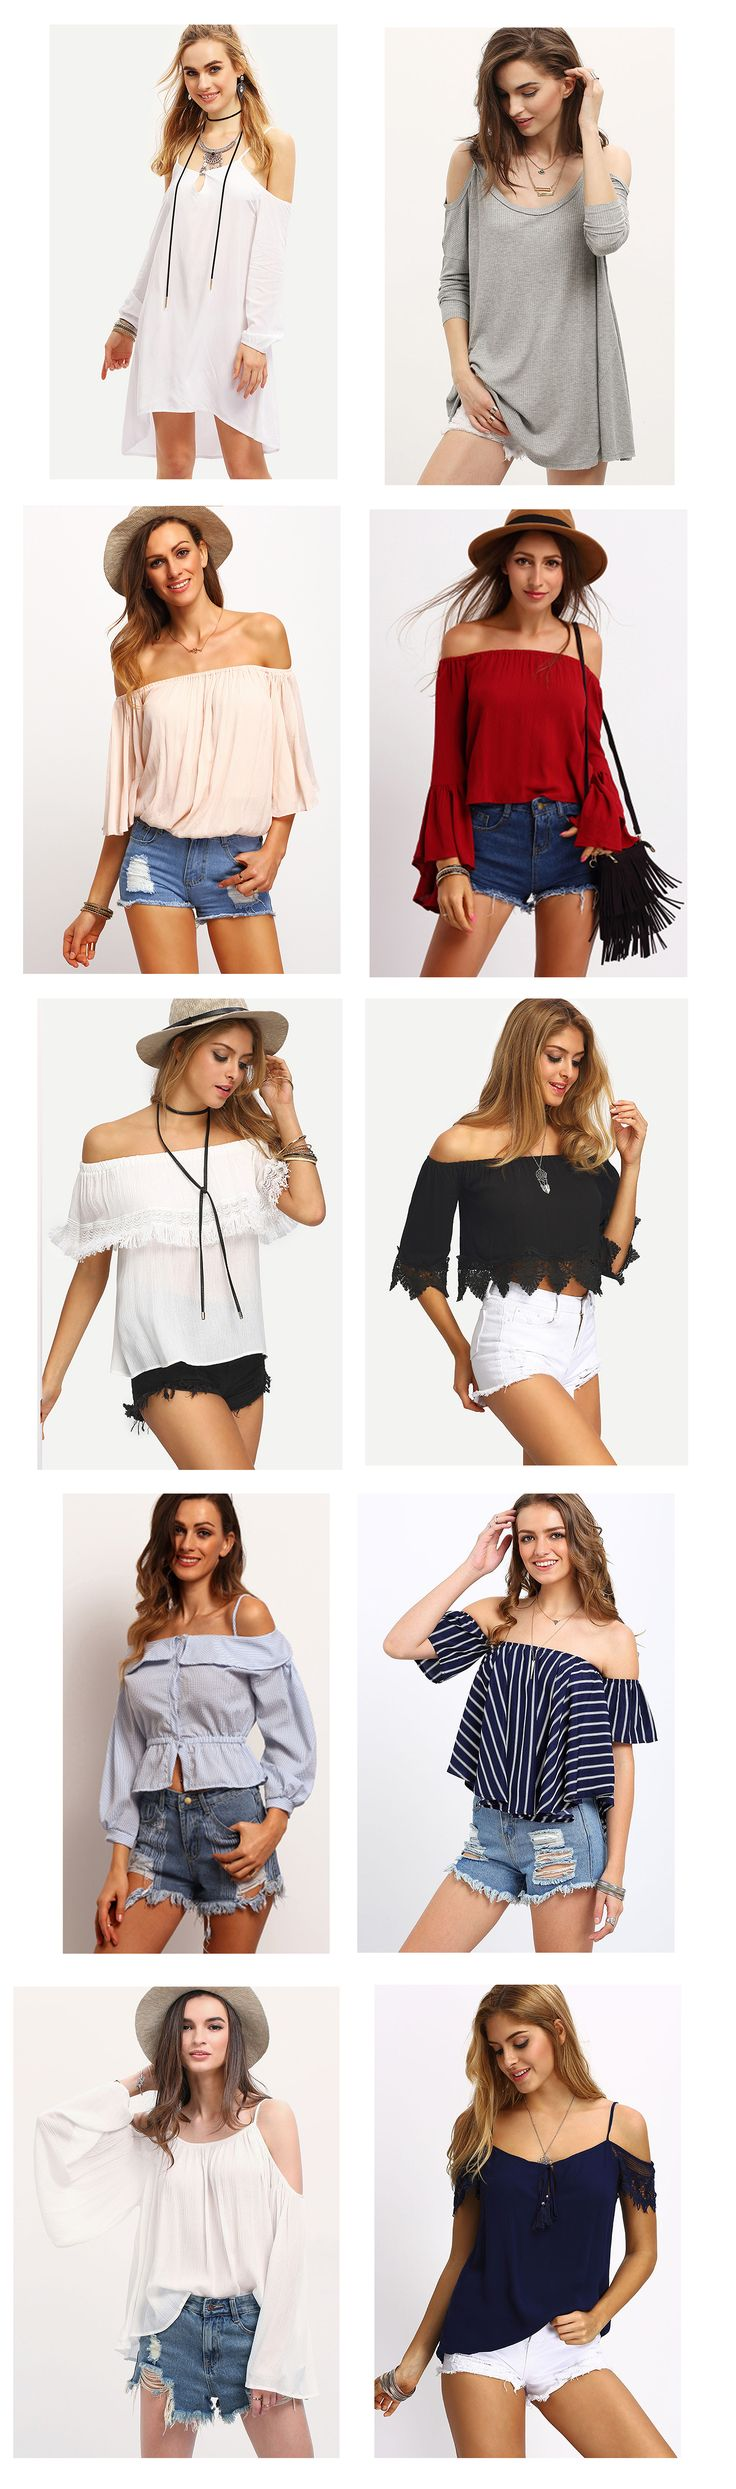 Lol, a big surprise to find these pretty tops! Fashion trendy this summer comes with off he shoulder tops! Cute, chic and fashion design. Love!